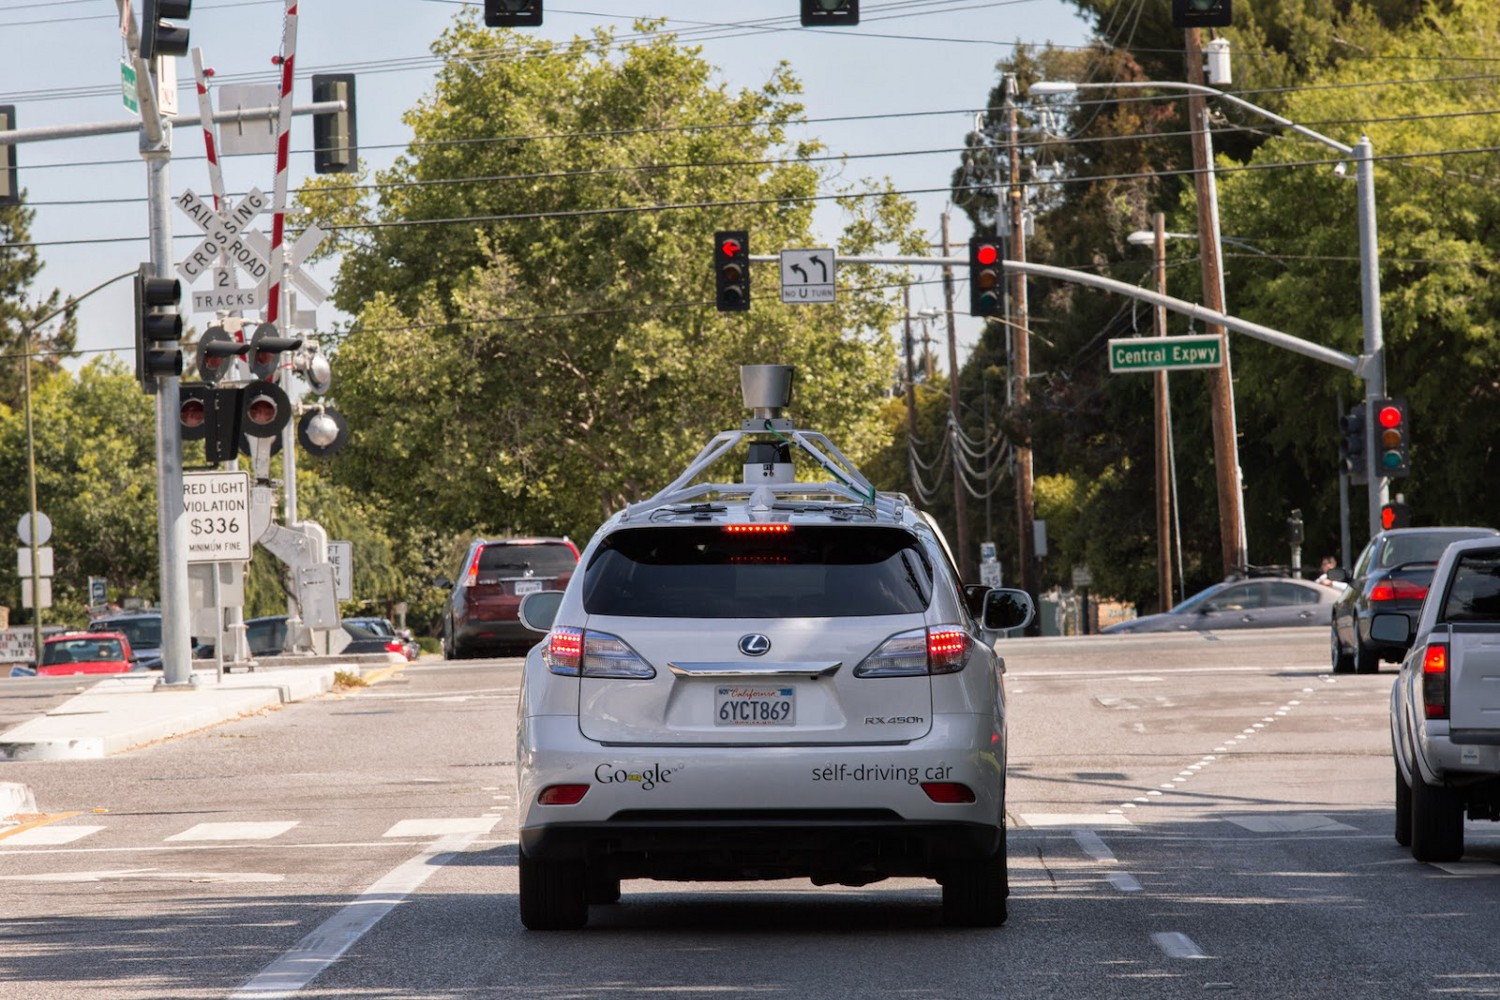 Self-Driving_Car_Google_a